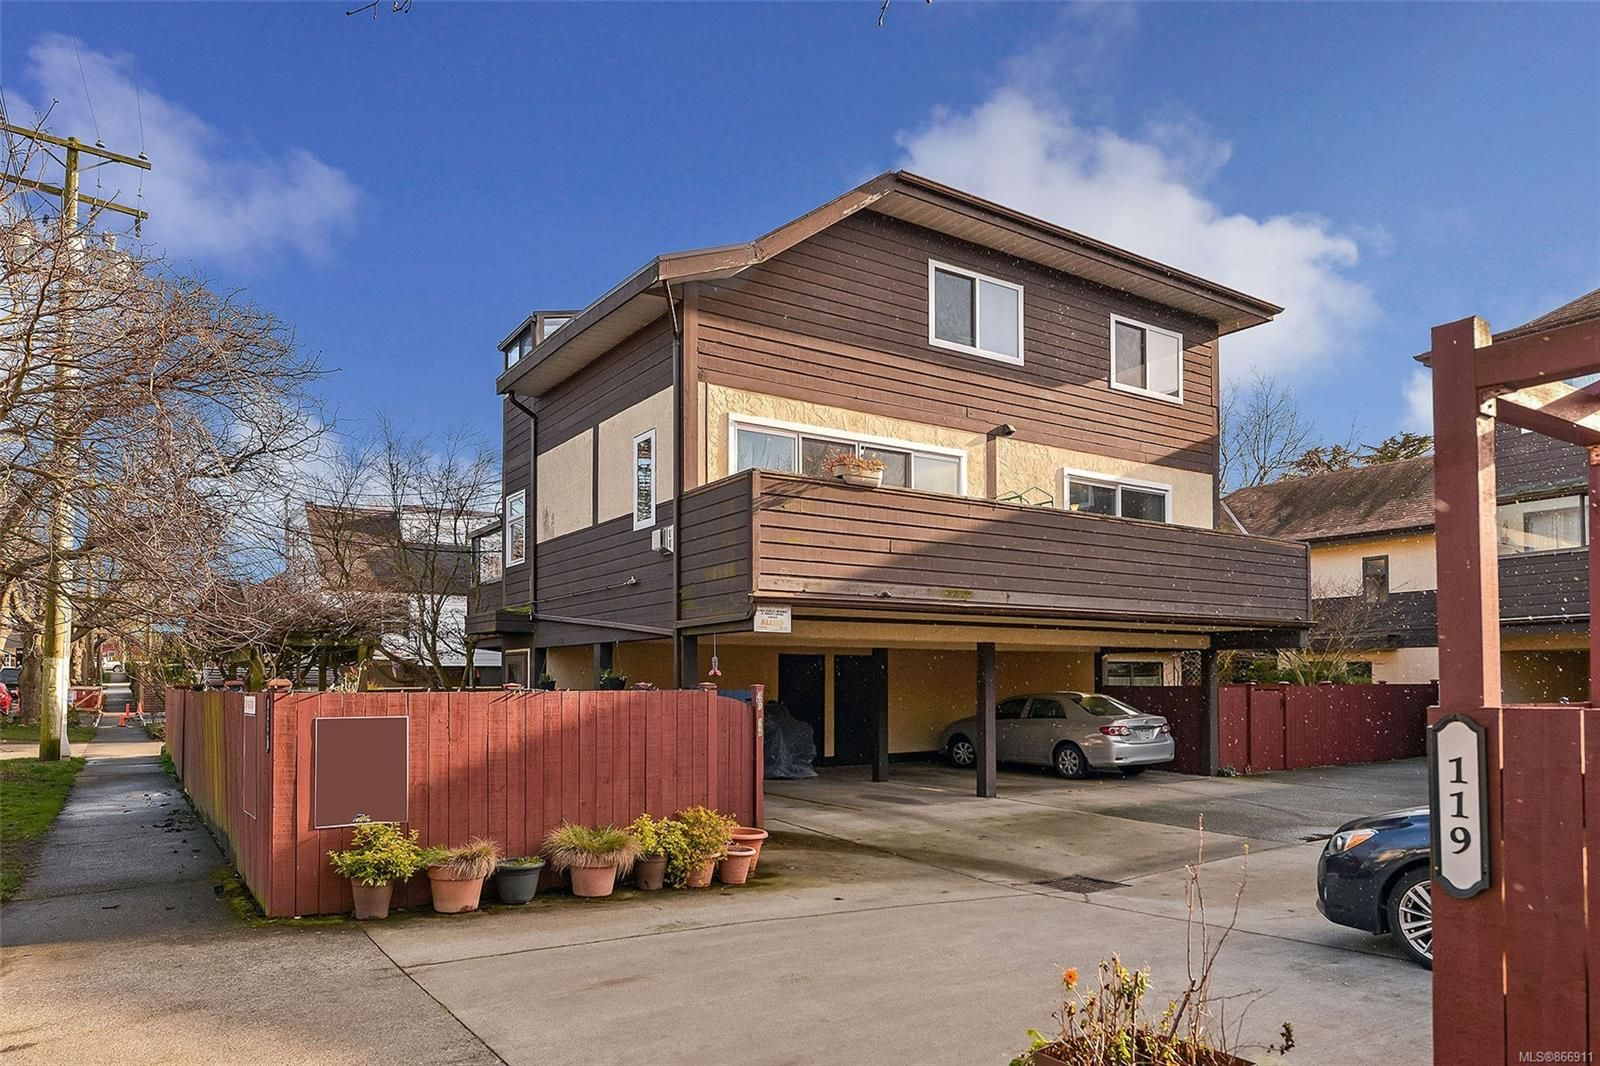 Main Photo: 101 119 Ladysmith St in : Vi James Bay Row/Townhouse for sale (Victoria)  : MLS®# 866911